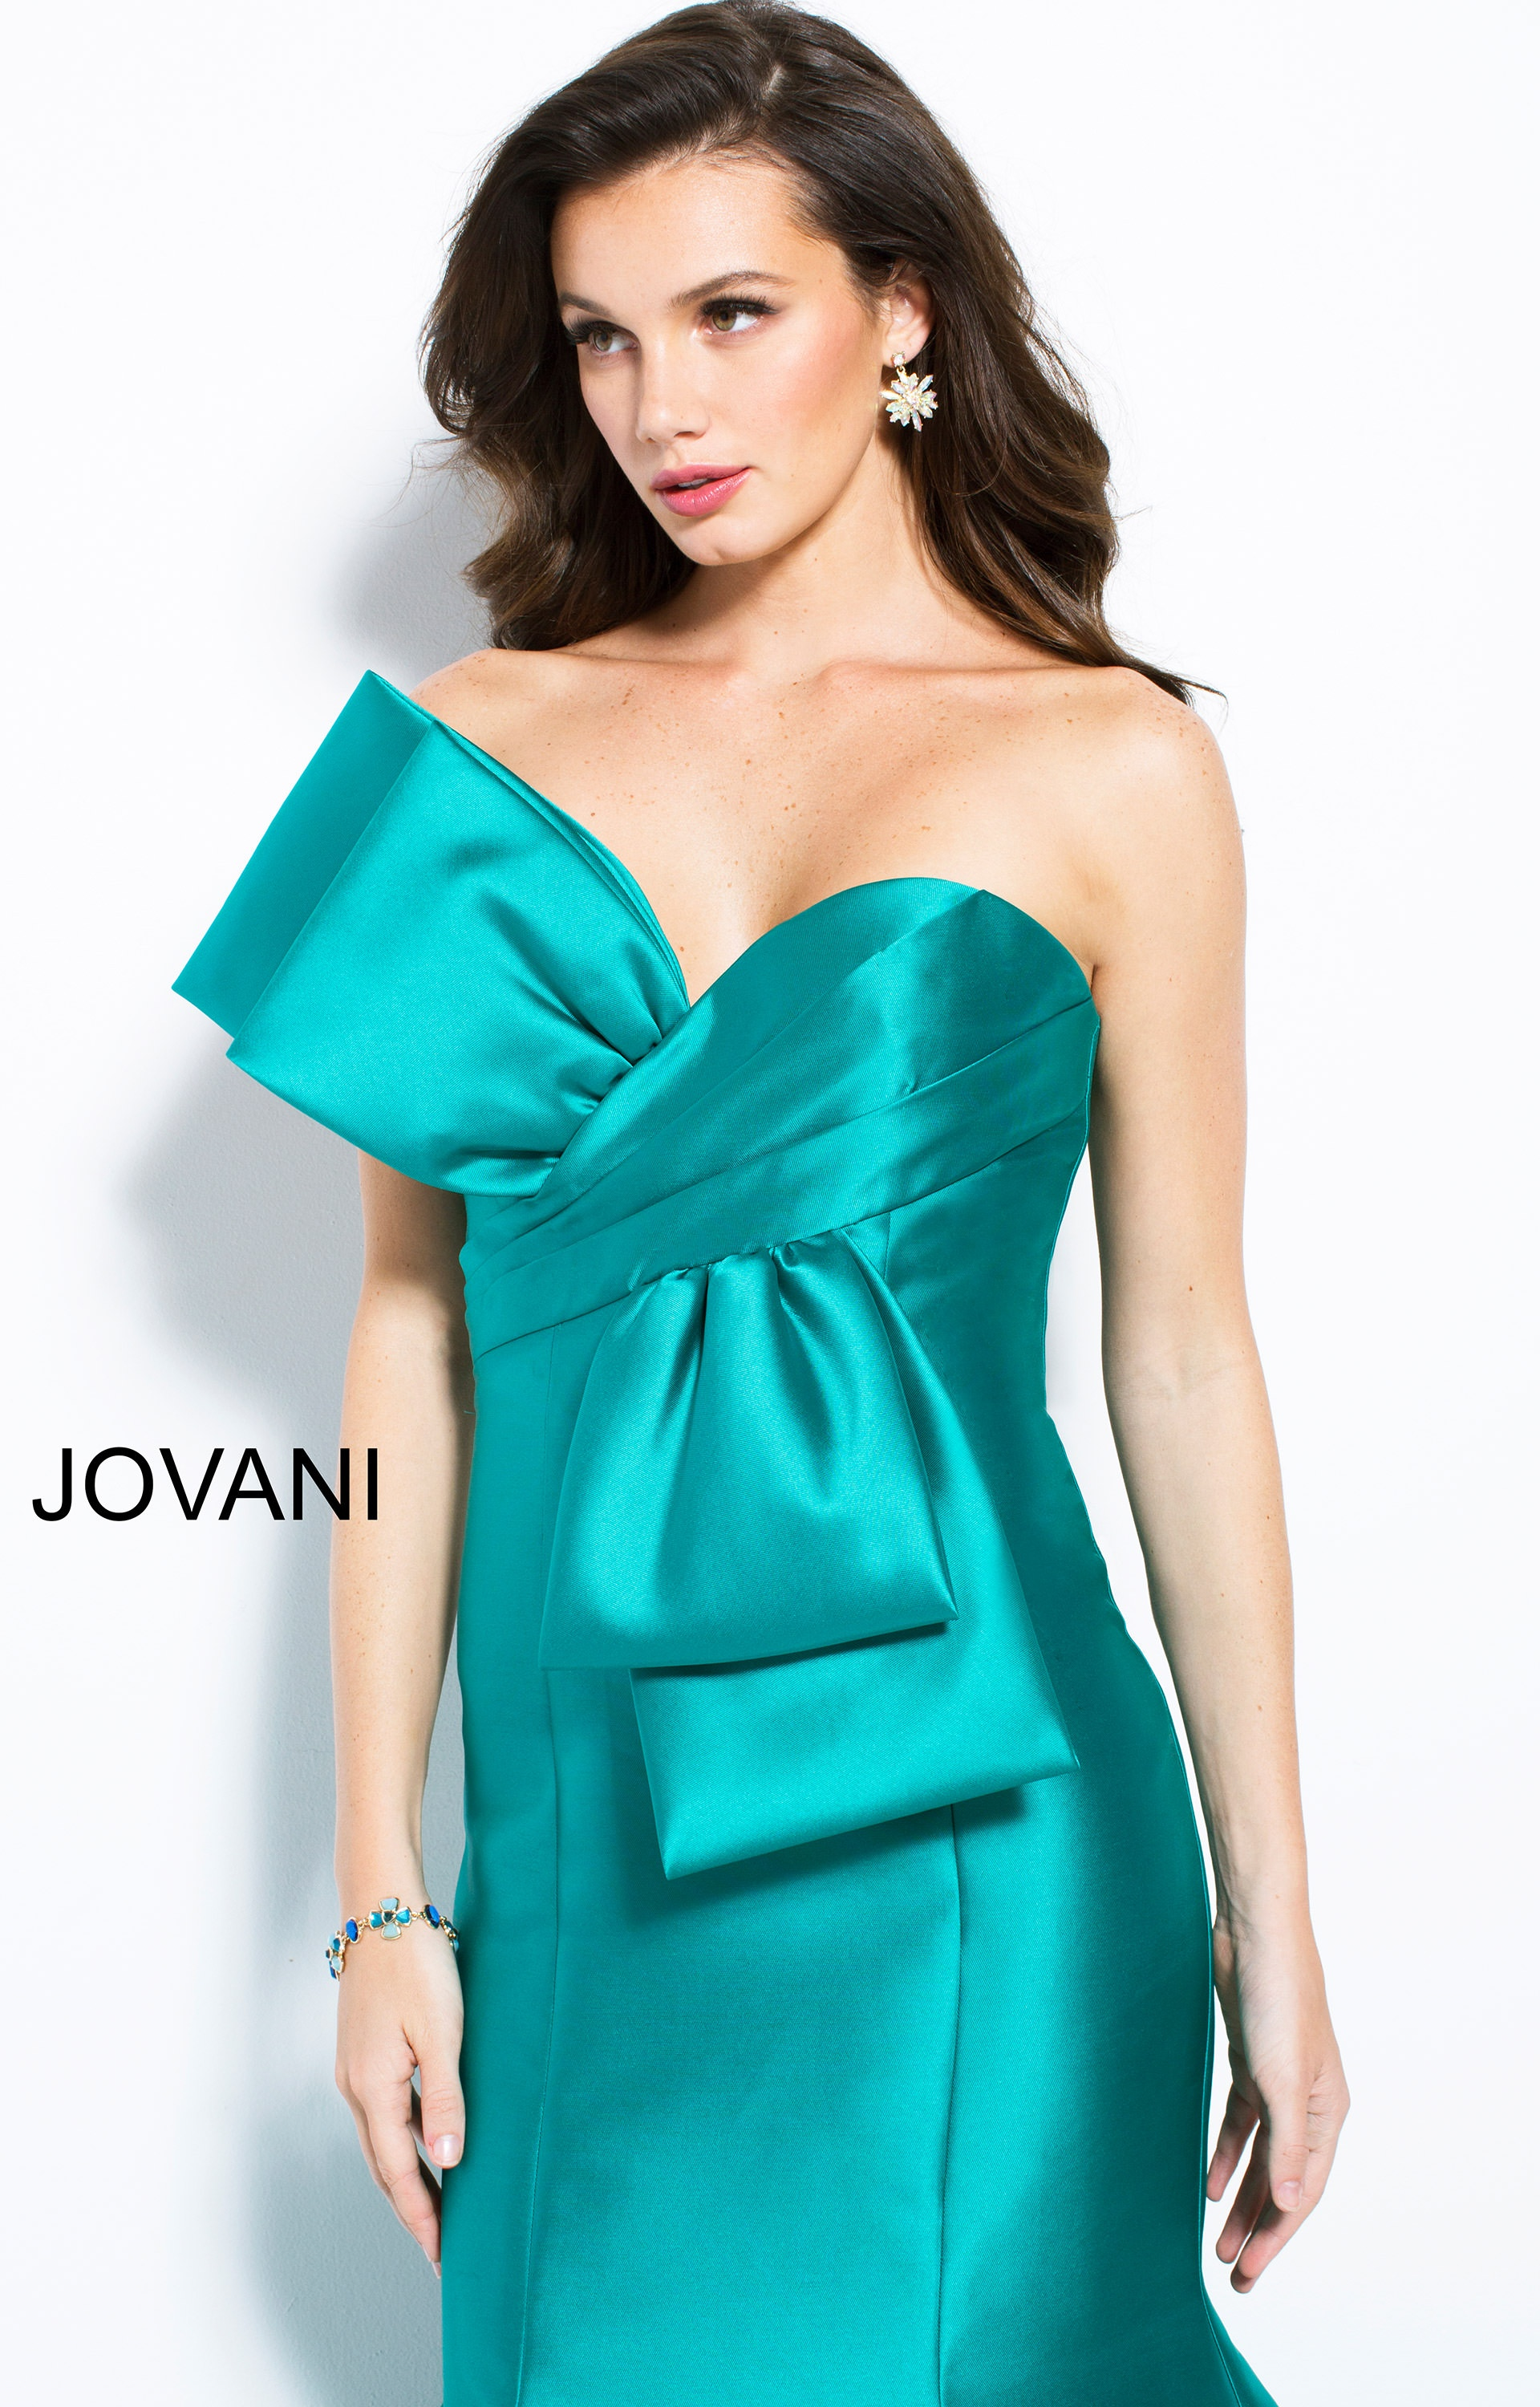 Jovani 51662 Satin Strapless Mermaid Prom Dress